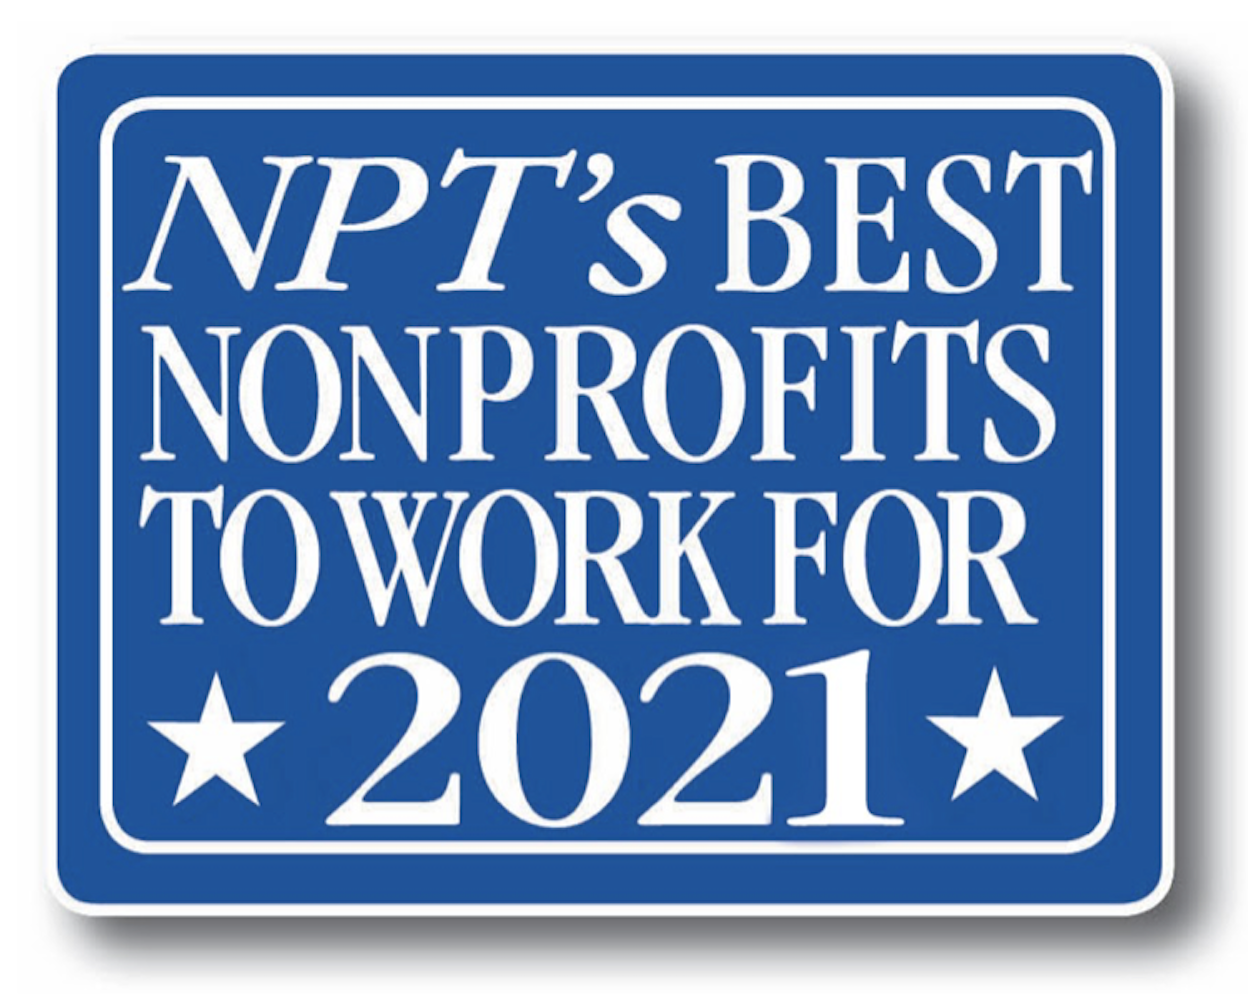 Voted Best Nonprofit to Work For!